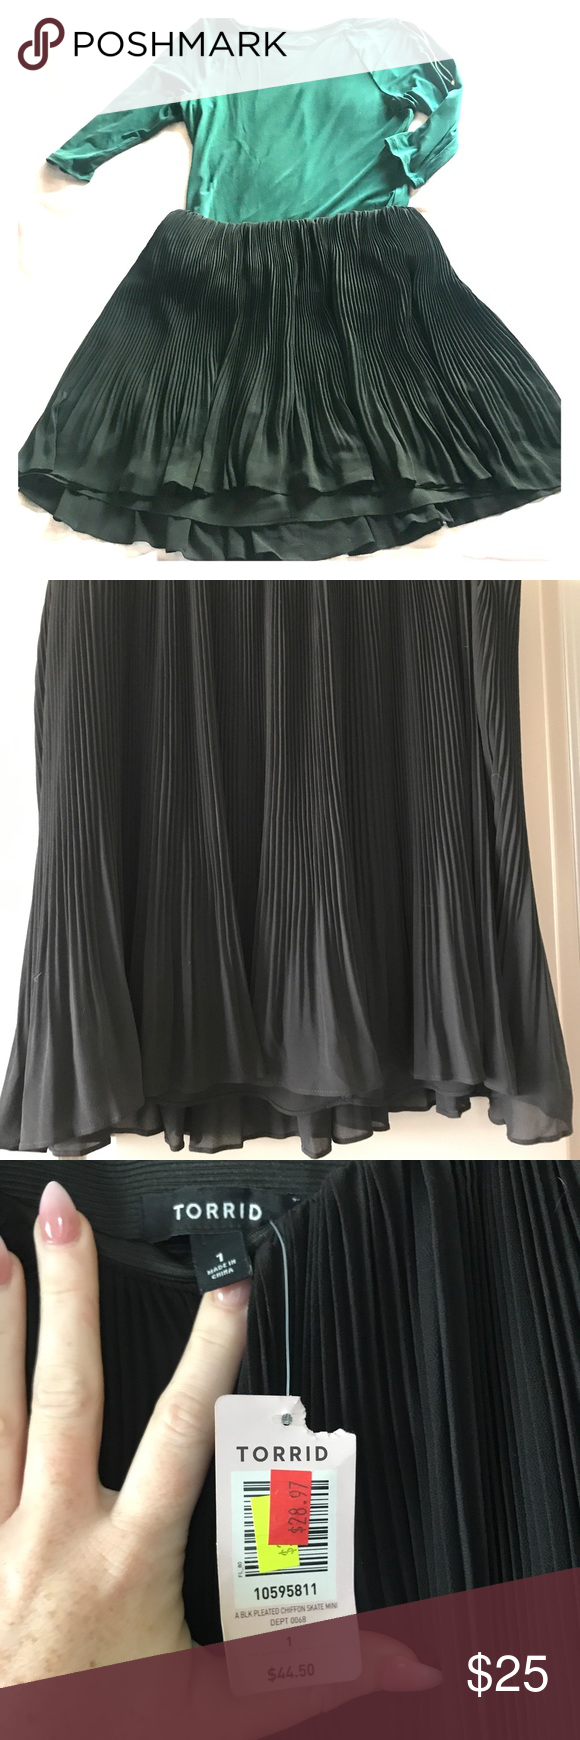 27a685b2982 Black Pleated Chiffon Skate Mini Skirt NWT. Black chiffon mini skirt for plus  size.